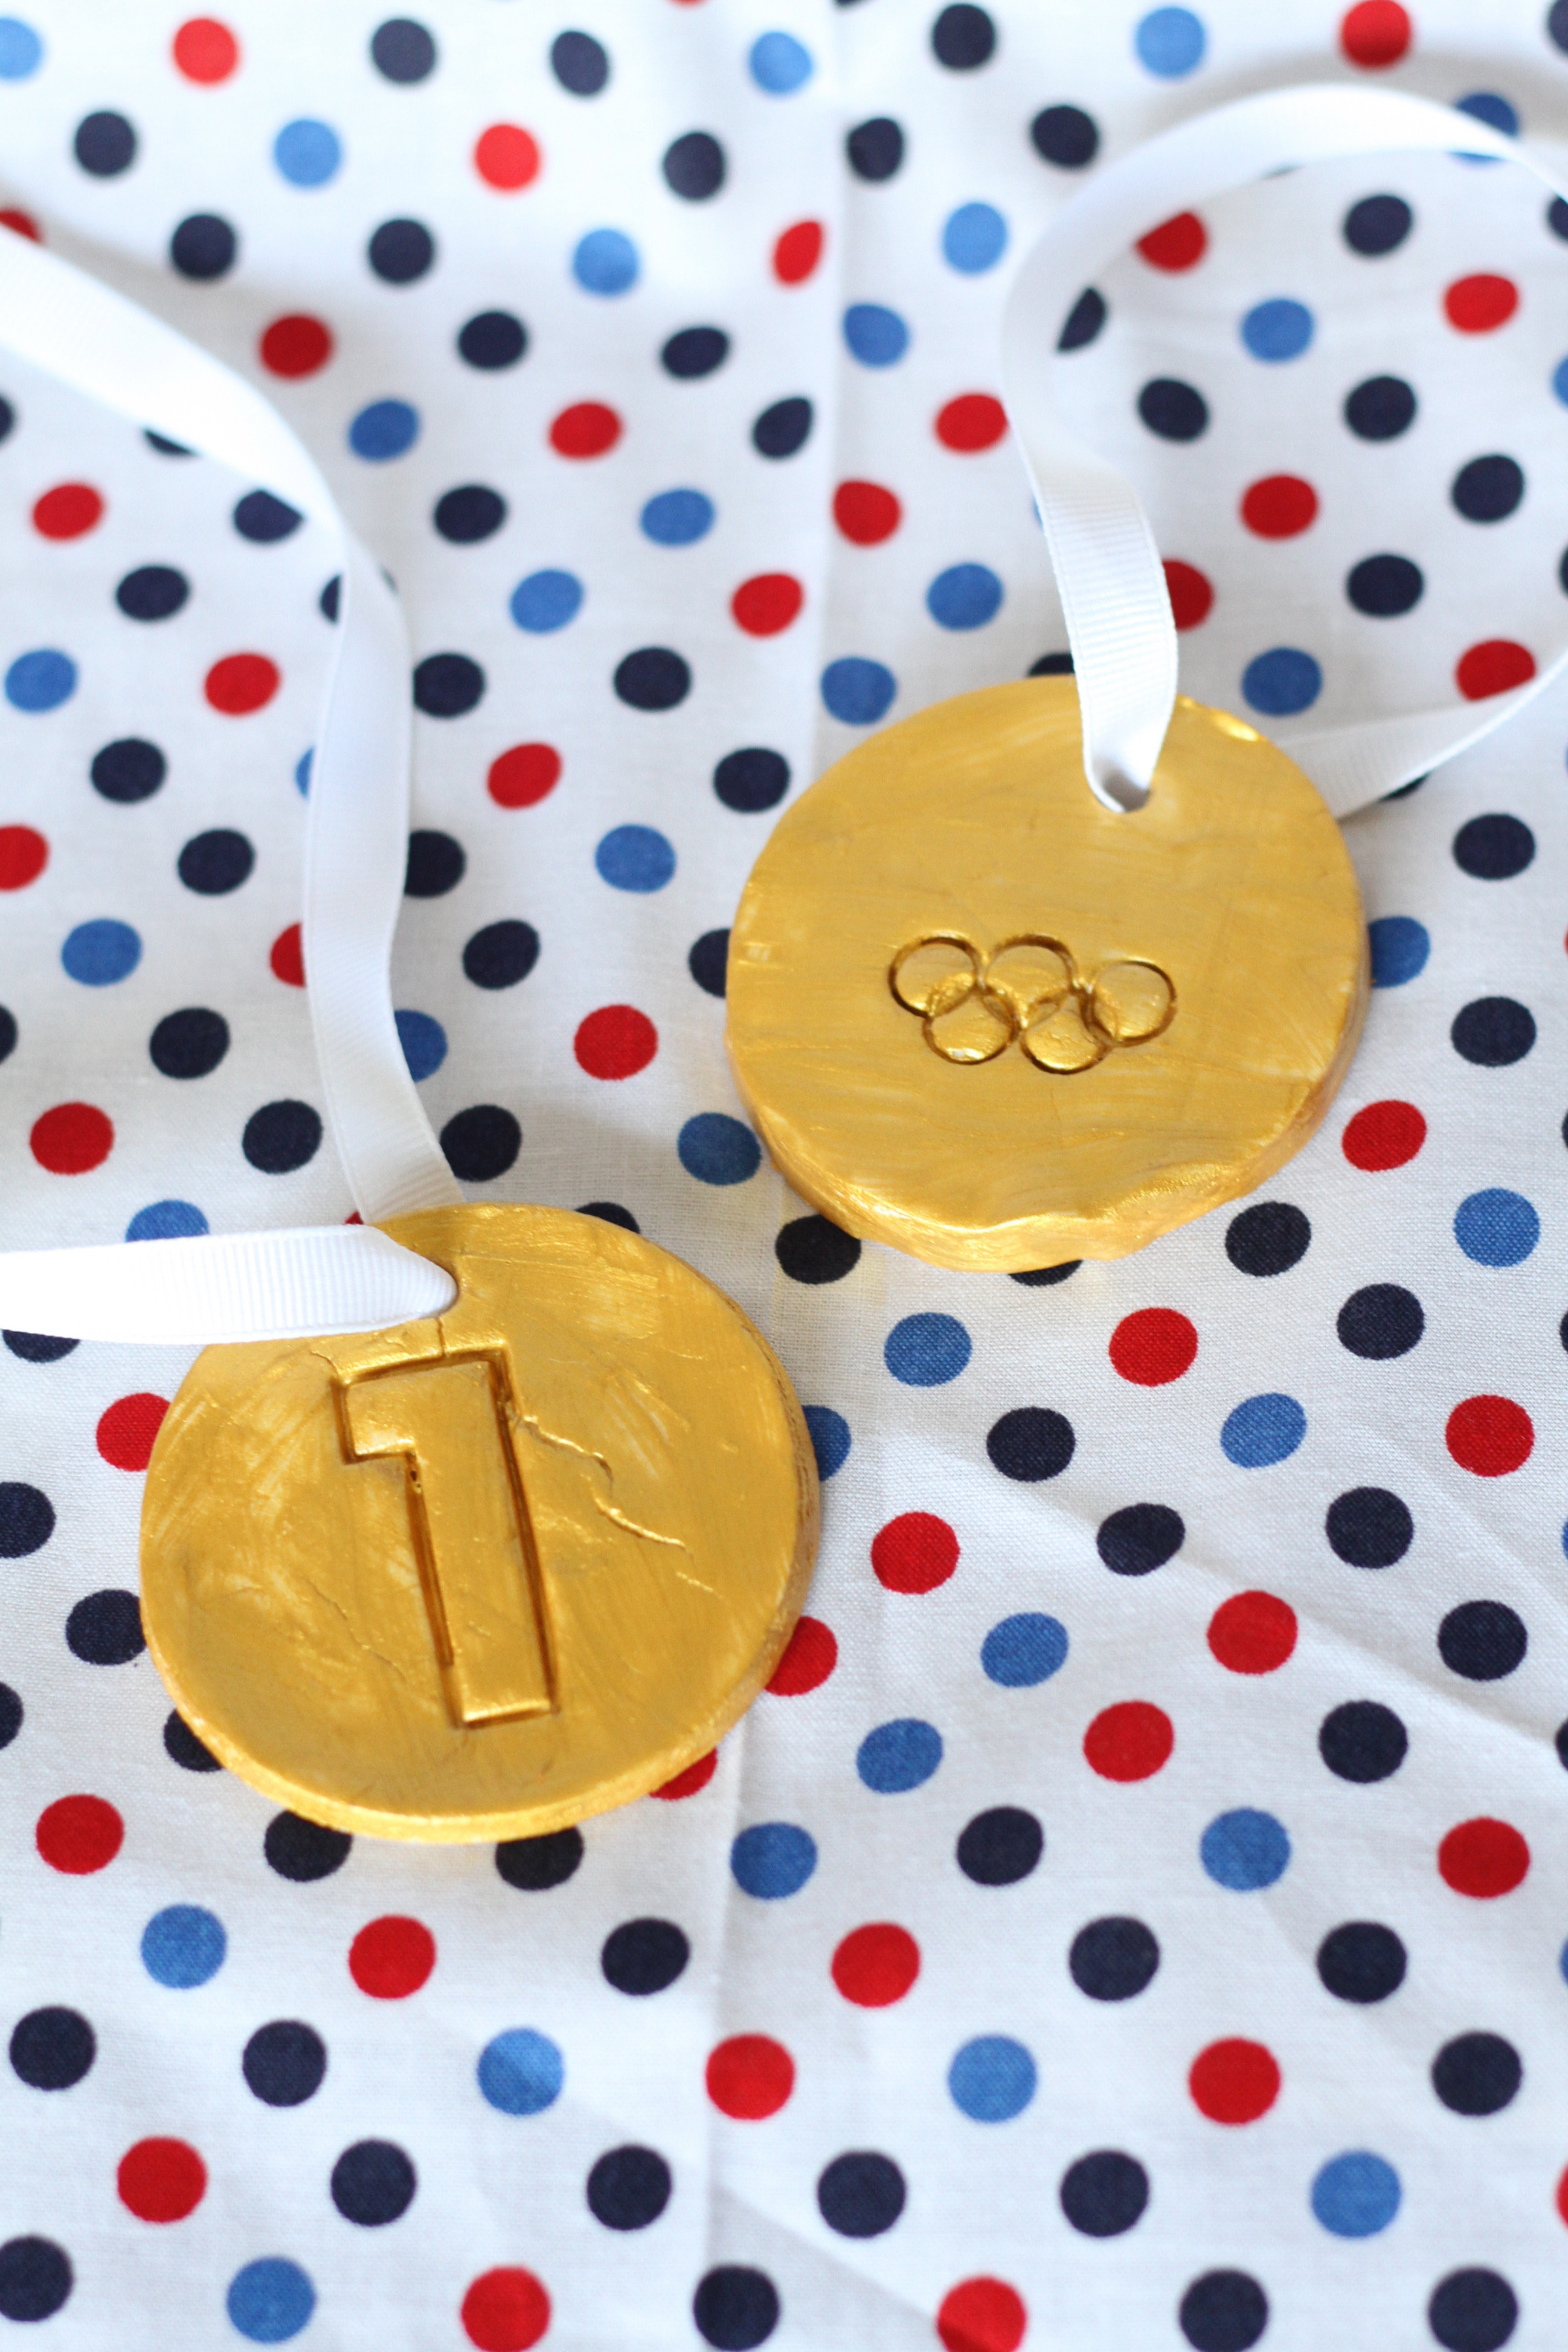 Olympic medals made with baking soda and modeling clay